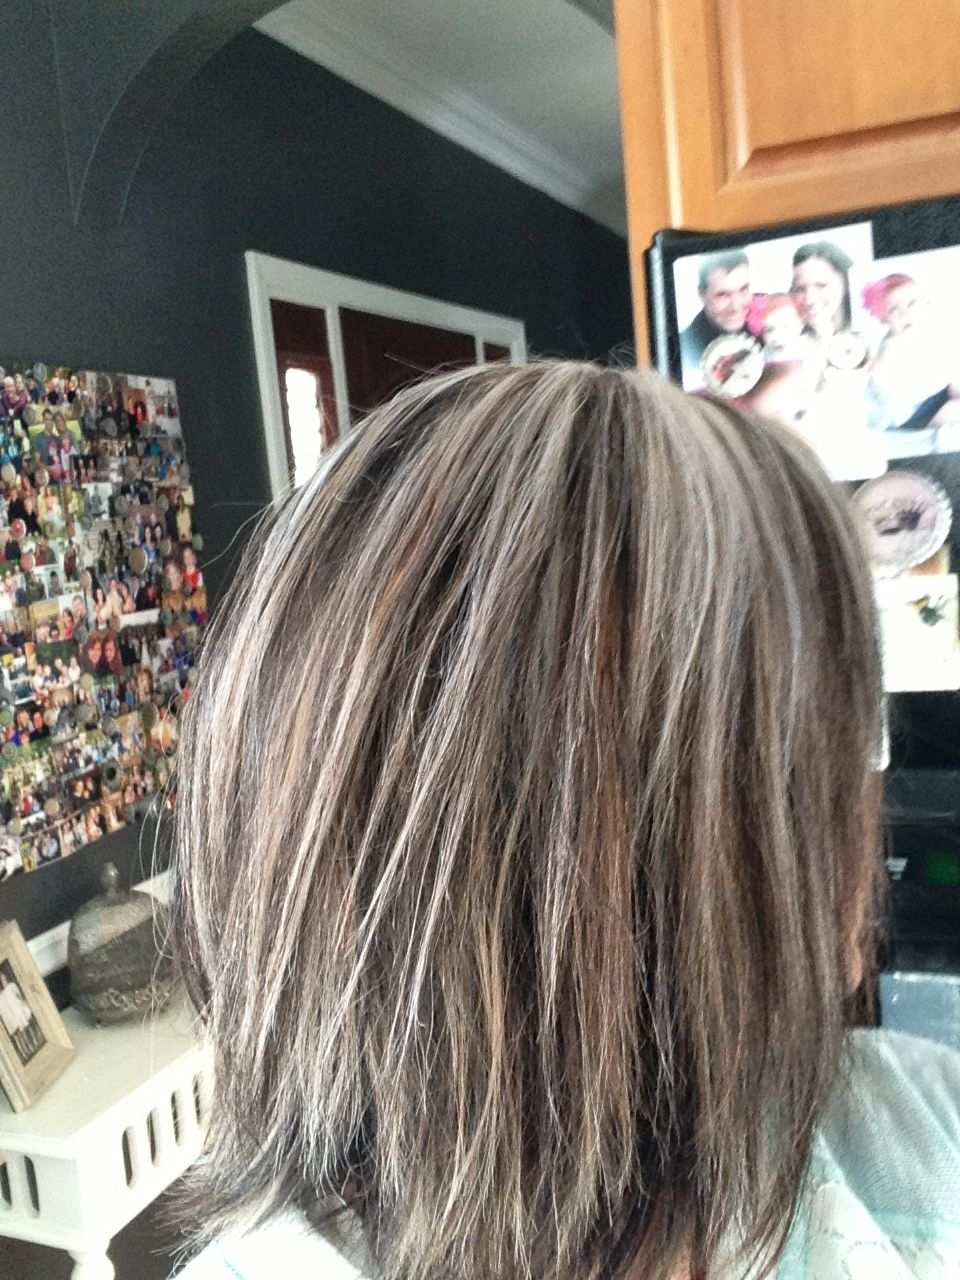 This Is My Hair Trying Again To See If The Pictures Distorts Hmmm